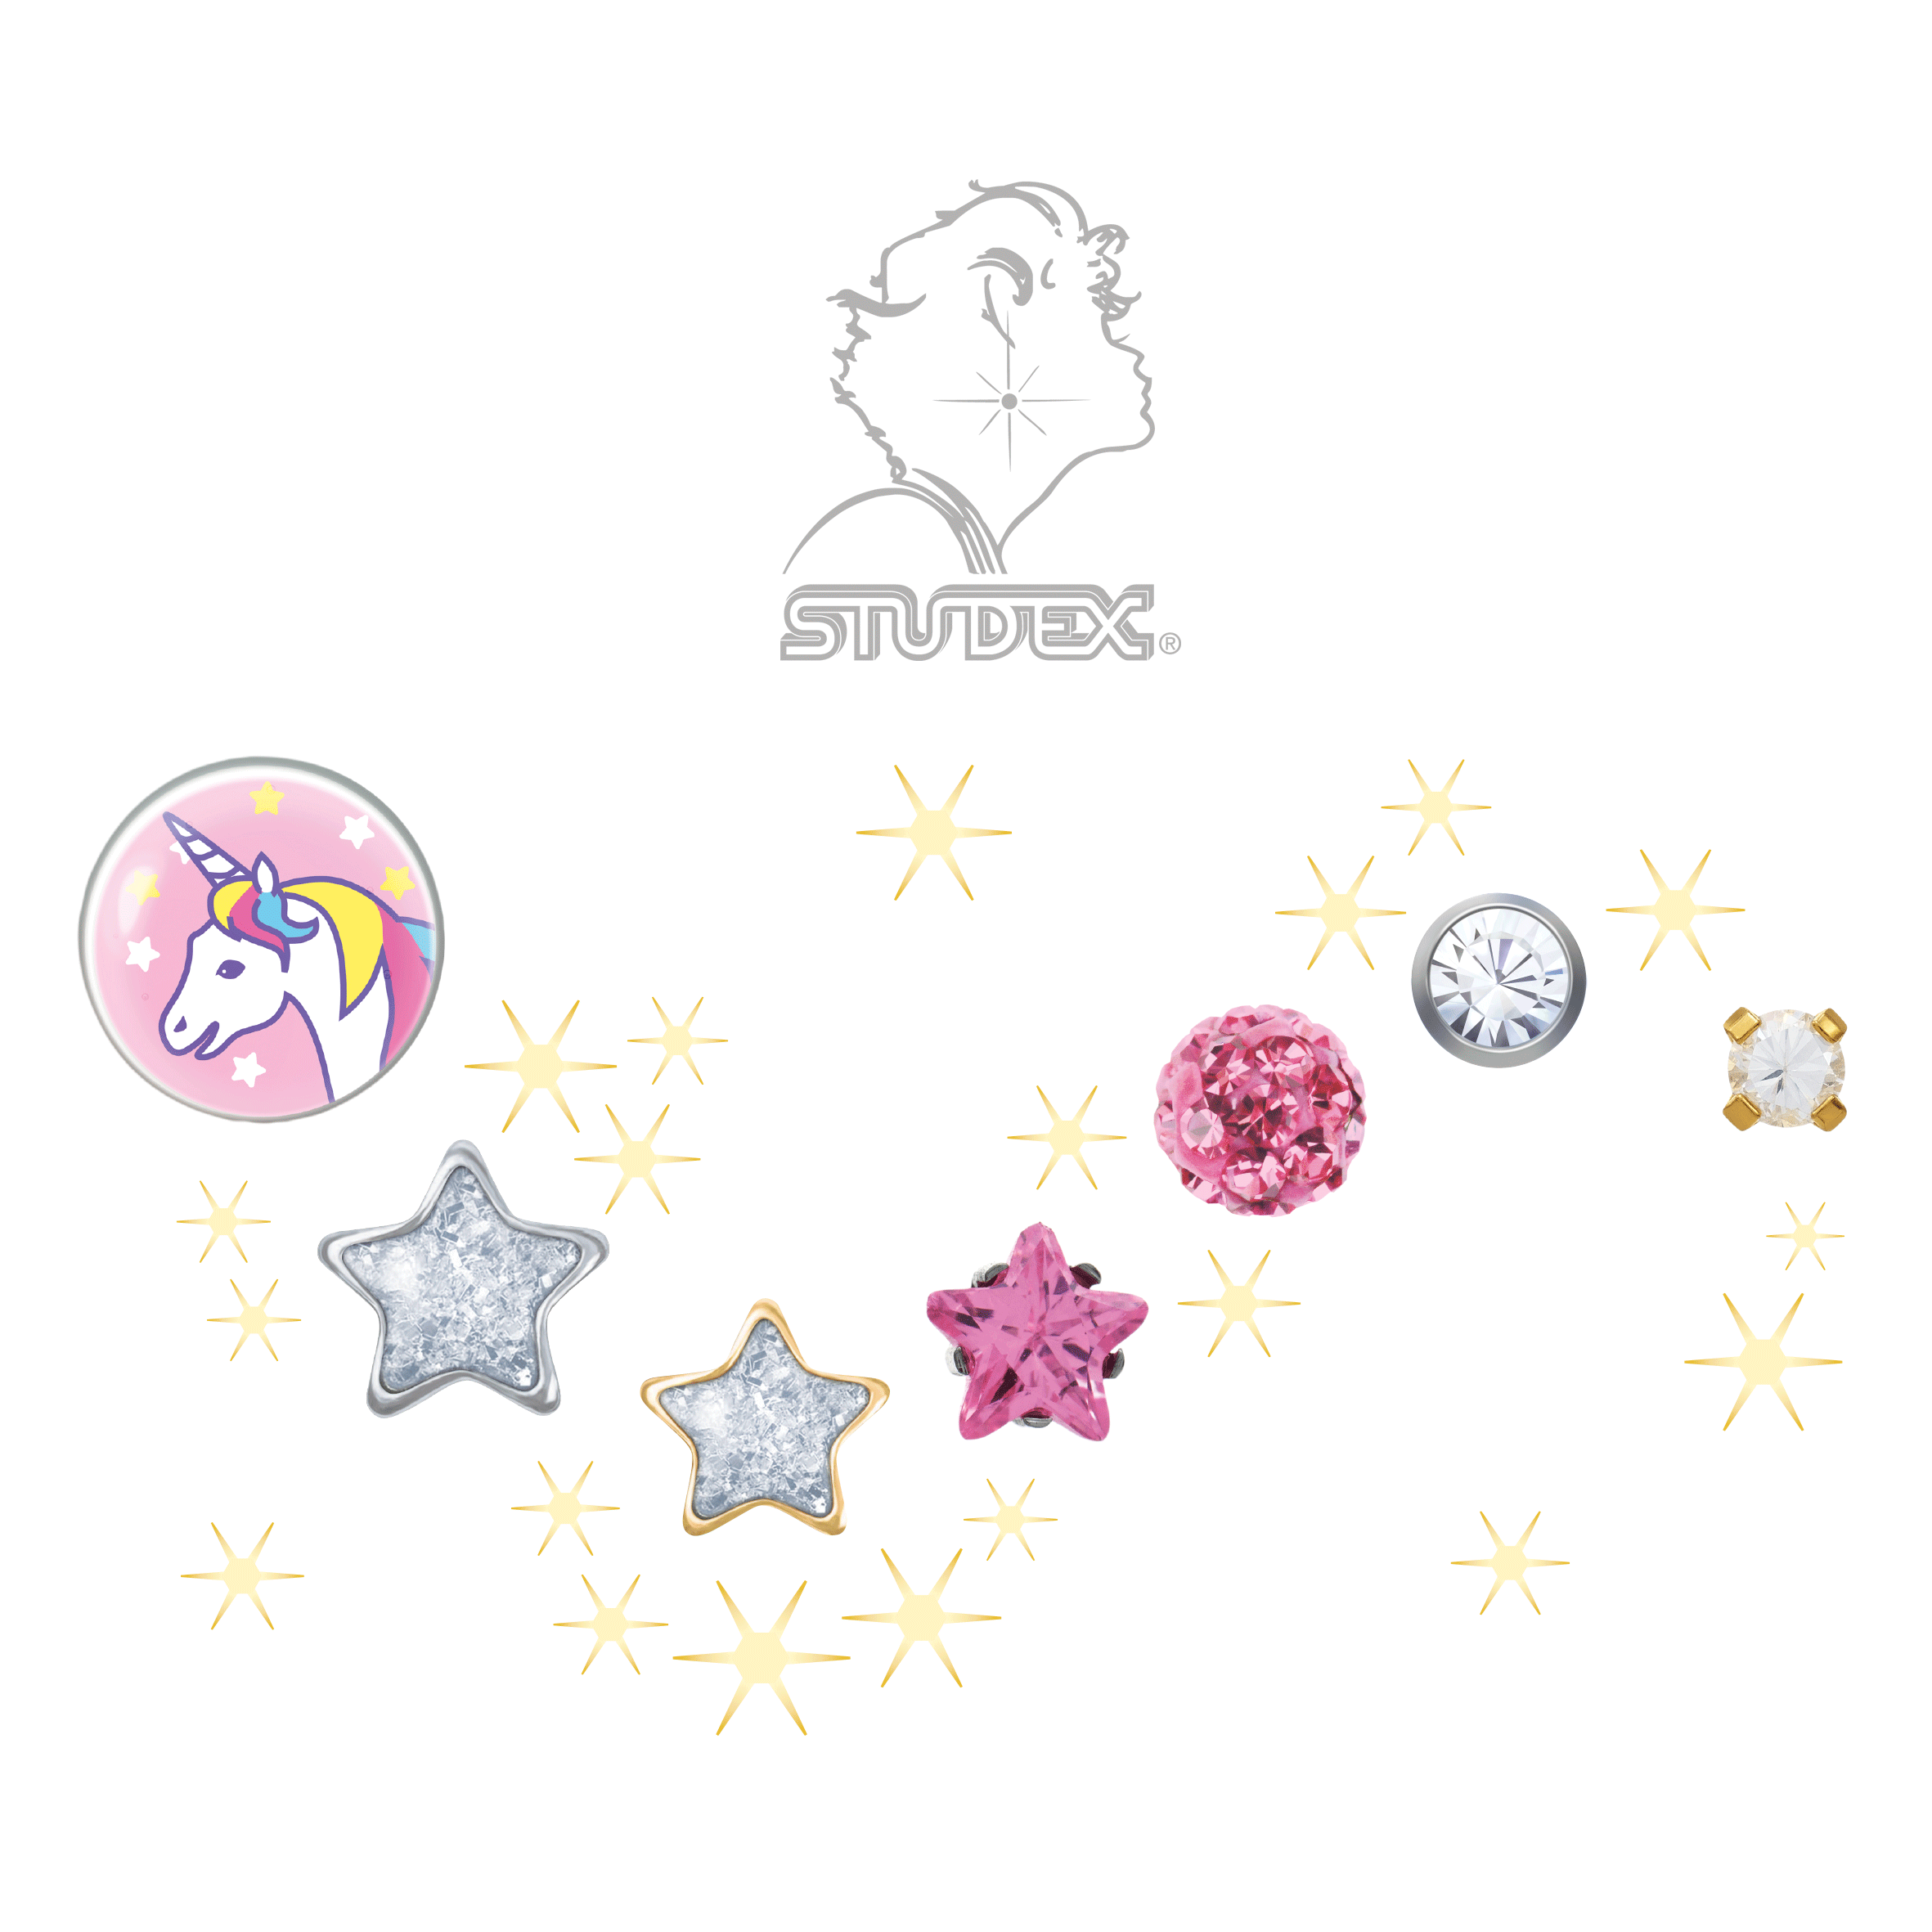 Earring and Ear Piercing Trends 2018 – #3: Individual Statements, Unicorns and Stardust